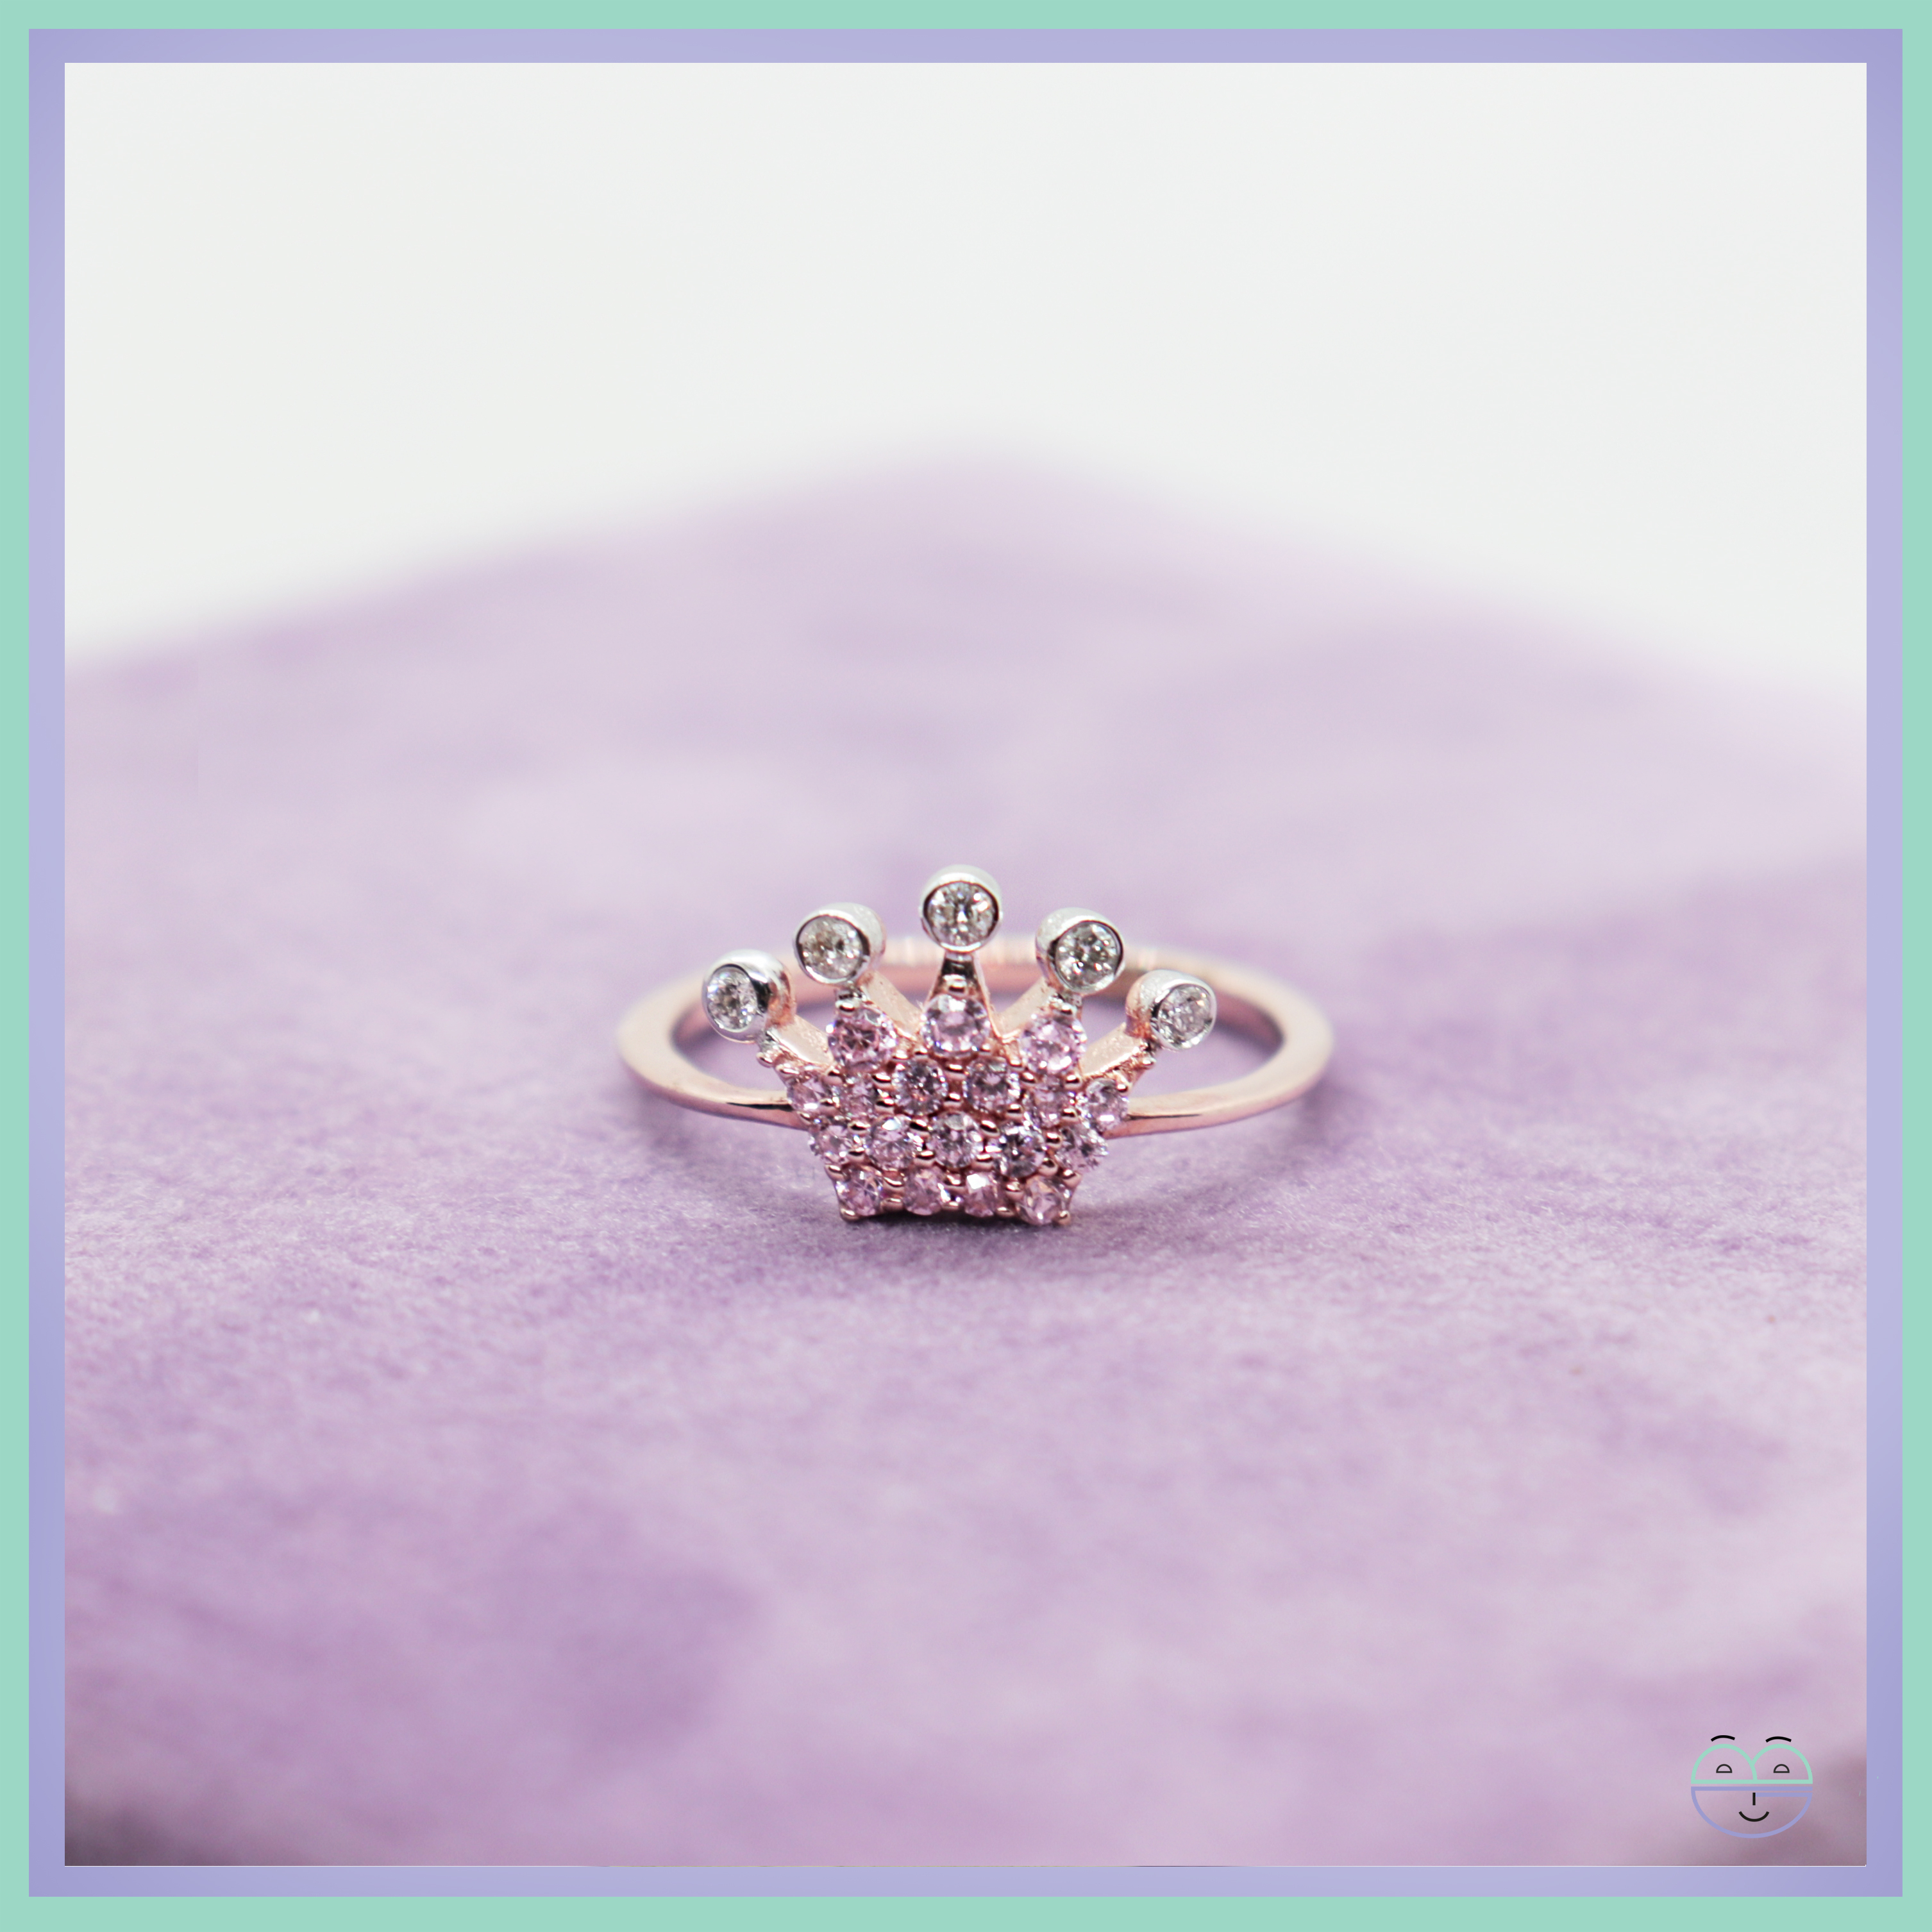 Sparkling Crown Ring Throughout Most Current Pink Sparkling Crown Rings (View 4 of 25)